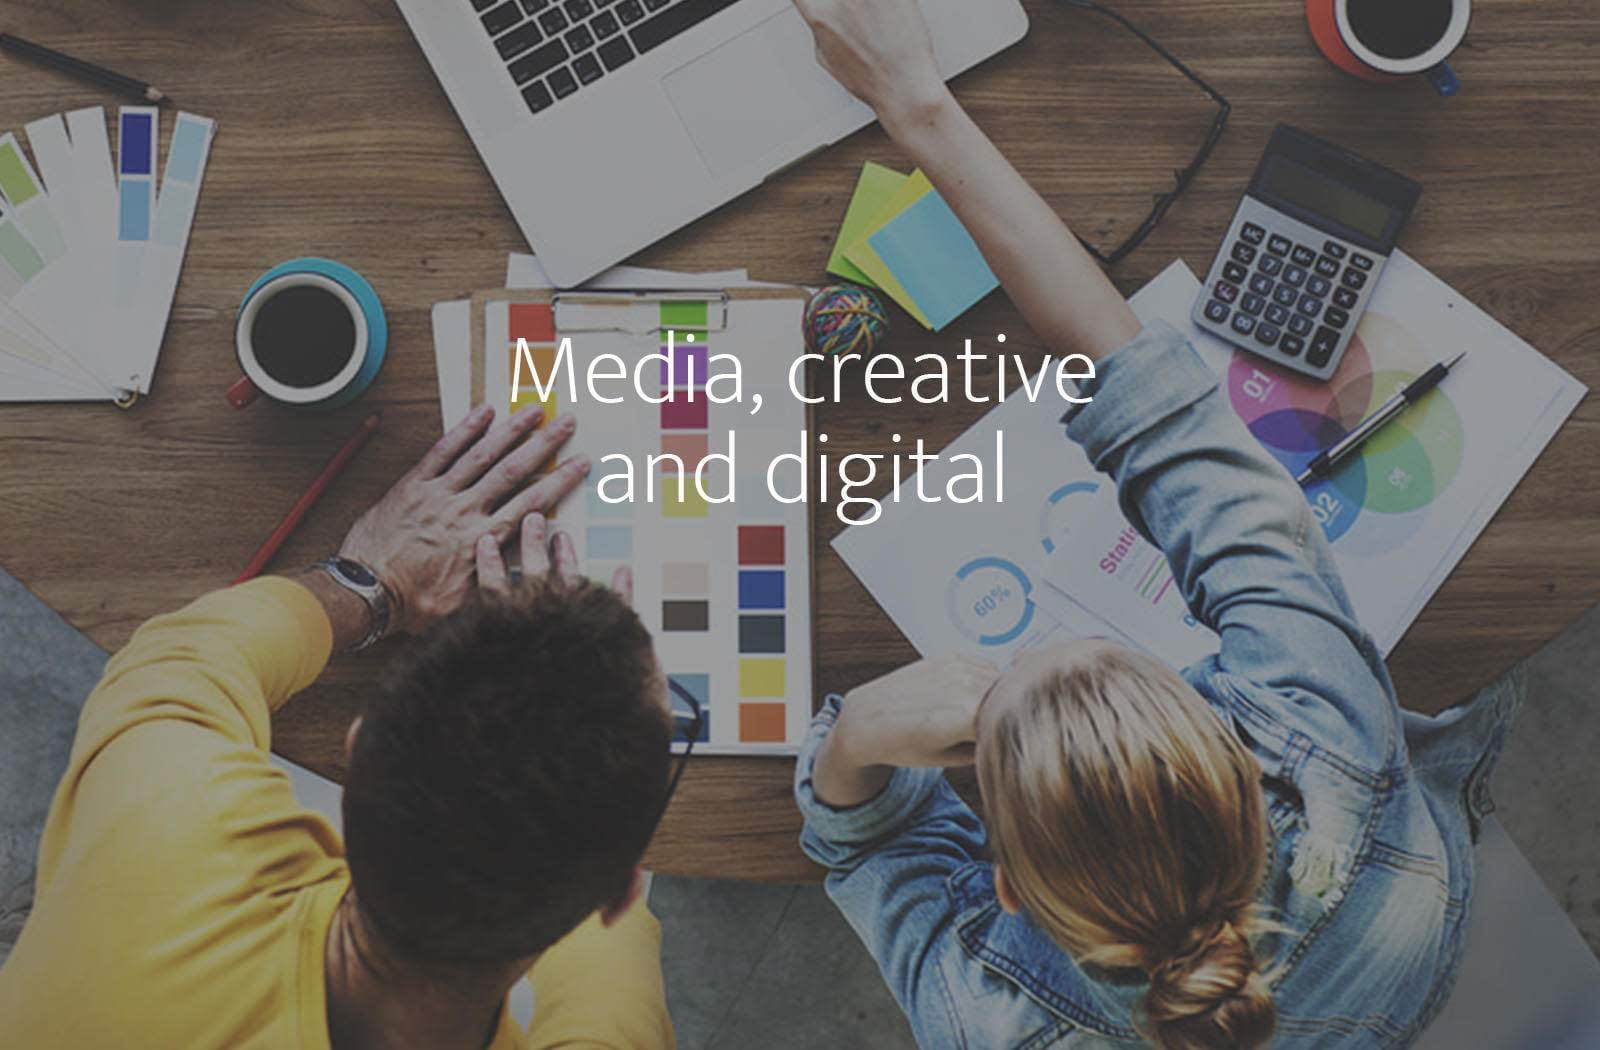 Recruitment, assessment & development for media, creative and digital sectors